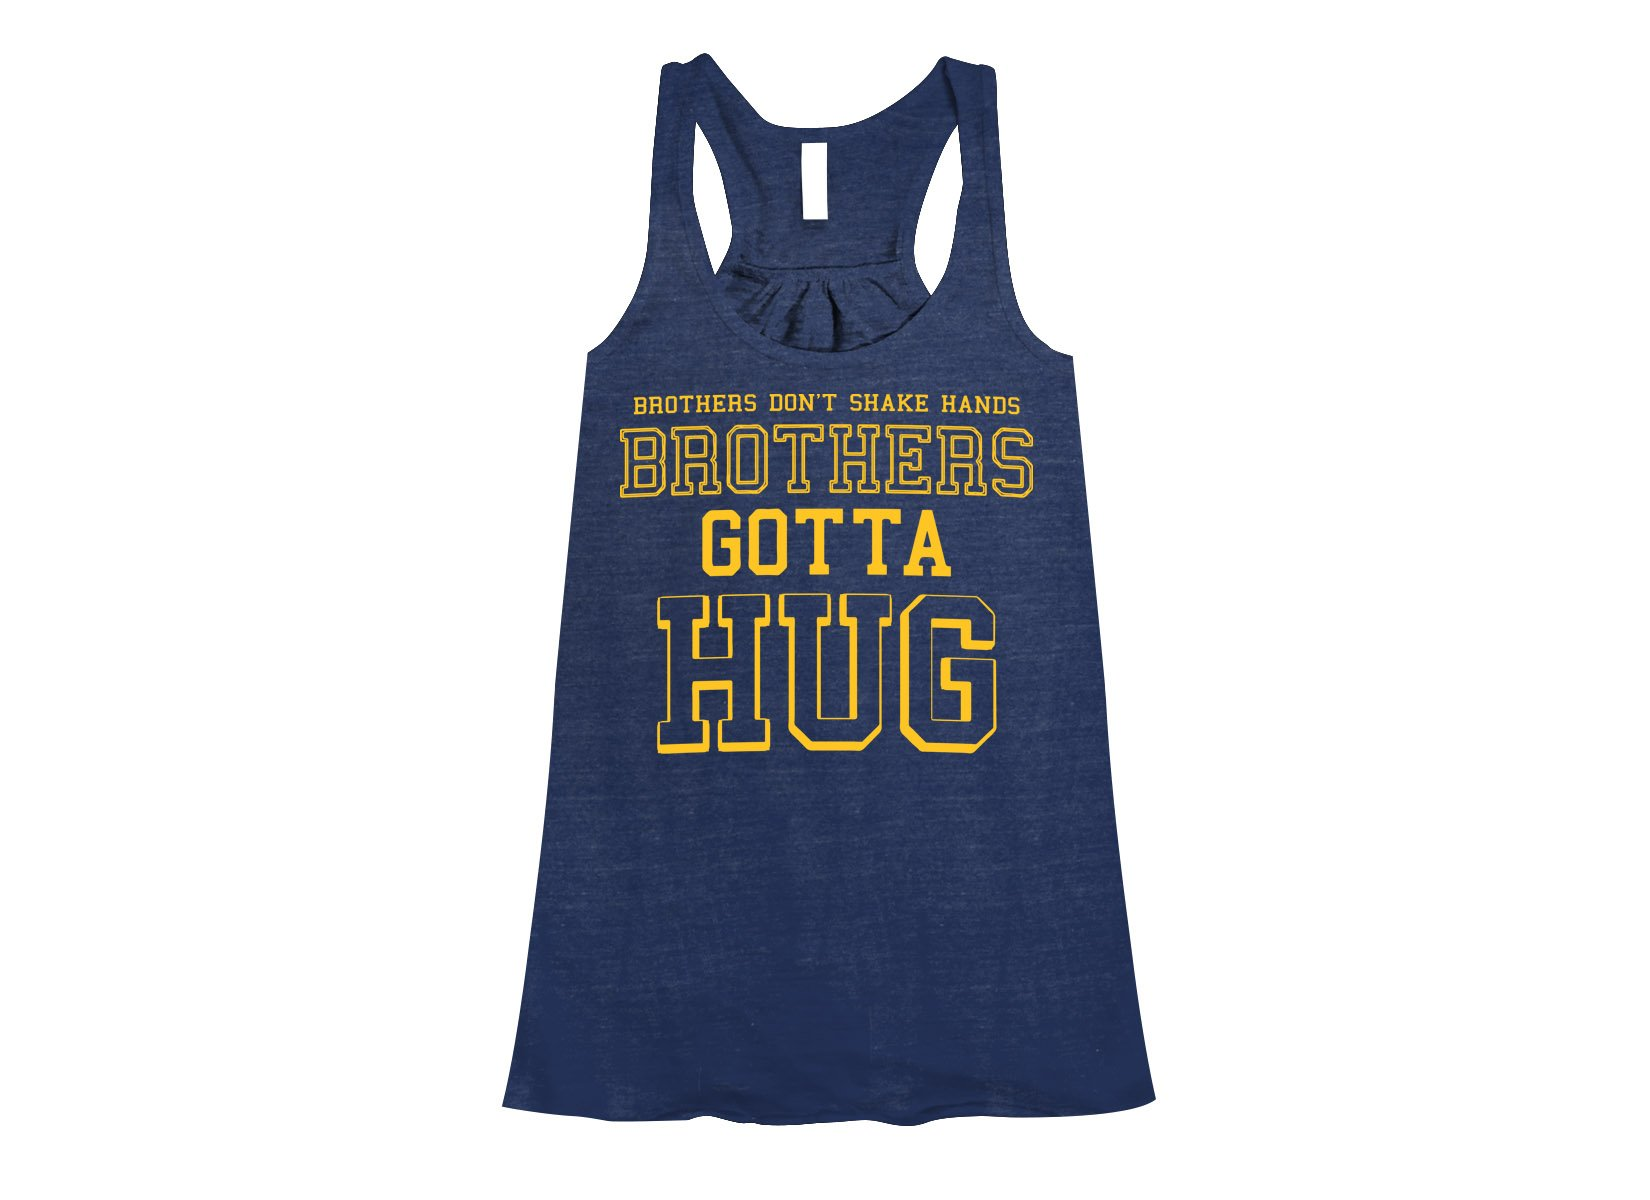 Brothers Gotta Hug on Womens Tanks T-Shirt